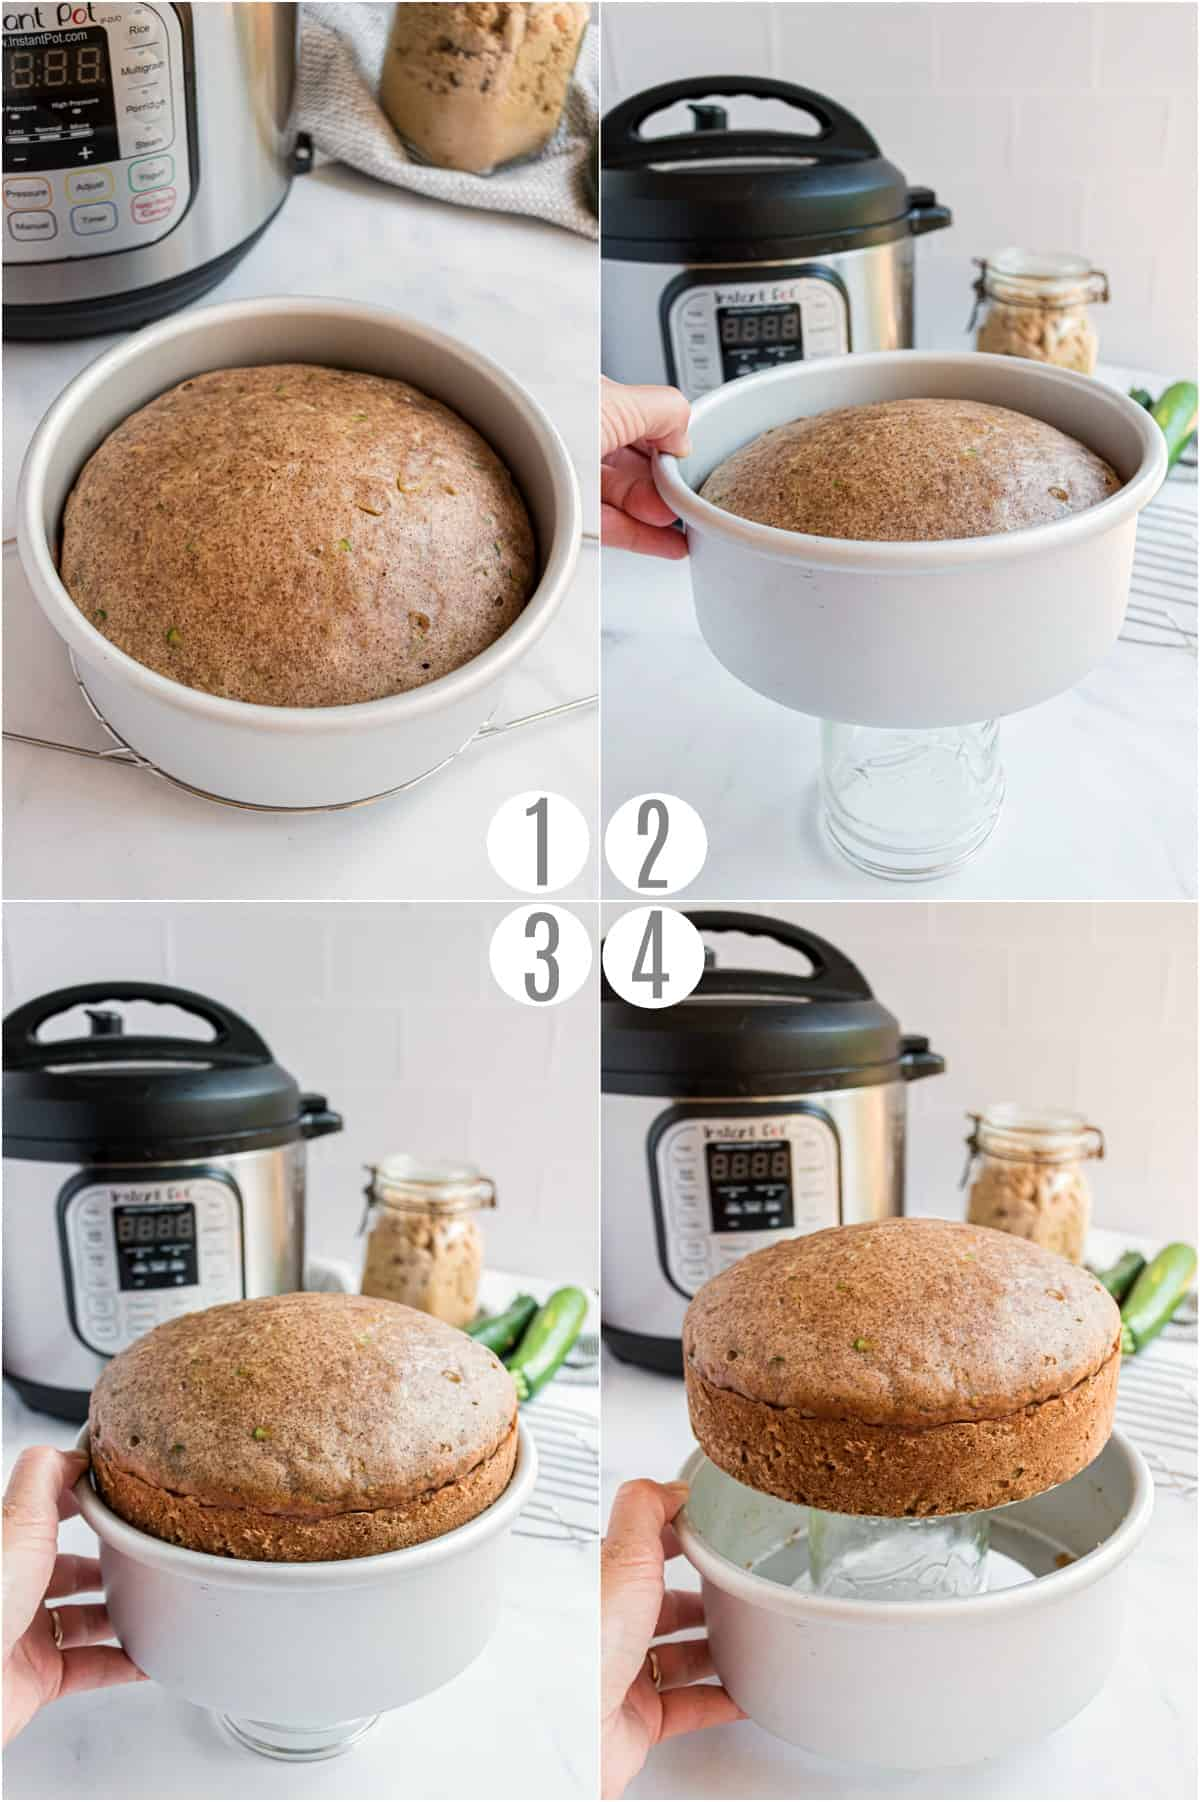 Step by step photos showing how to remove zucchini bread for an instant pot push pan.